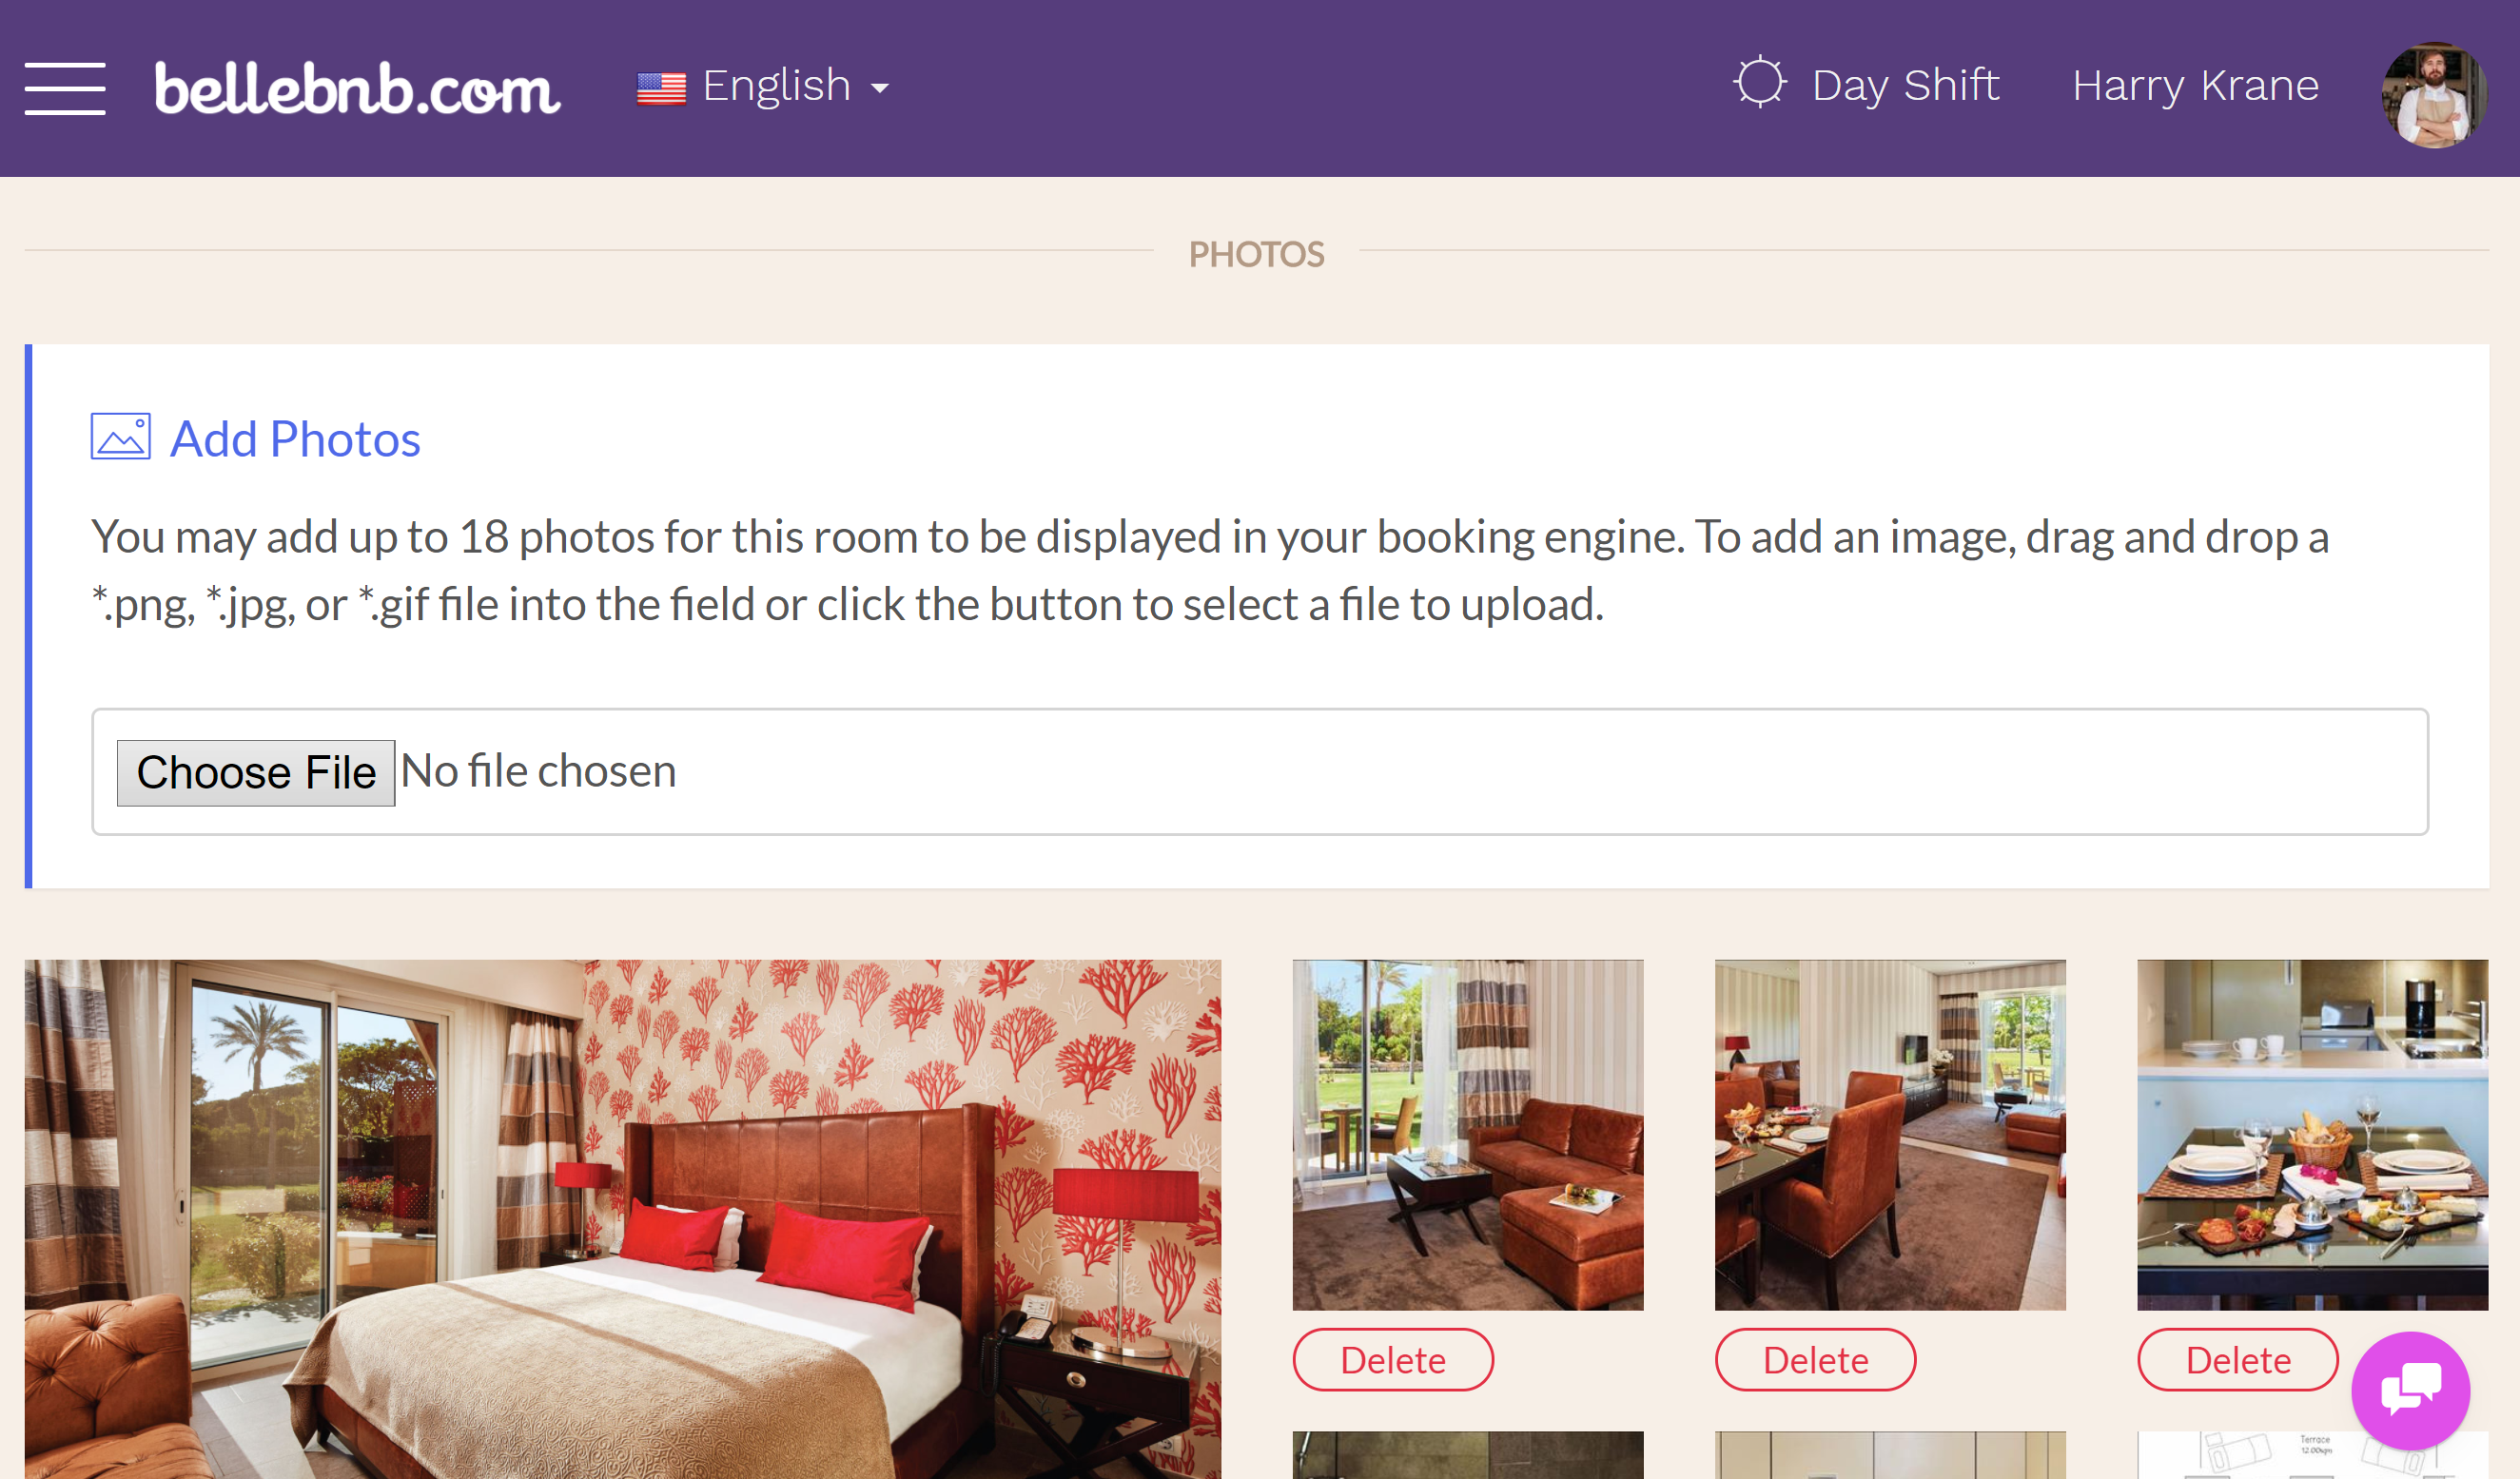 Add photos for your room types. Even more important than descriptions, guess want to see what their room will look like. You can add up to 25 photos for each room type, and you should add at leas 5 attractive photos to entice guests to book with you.